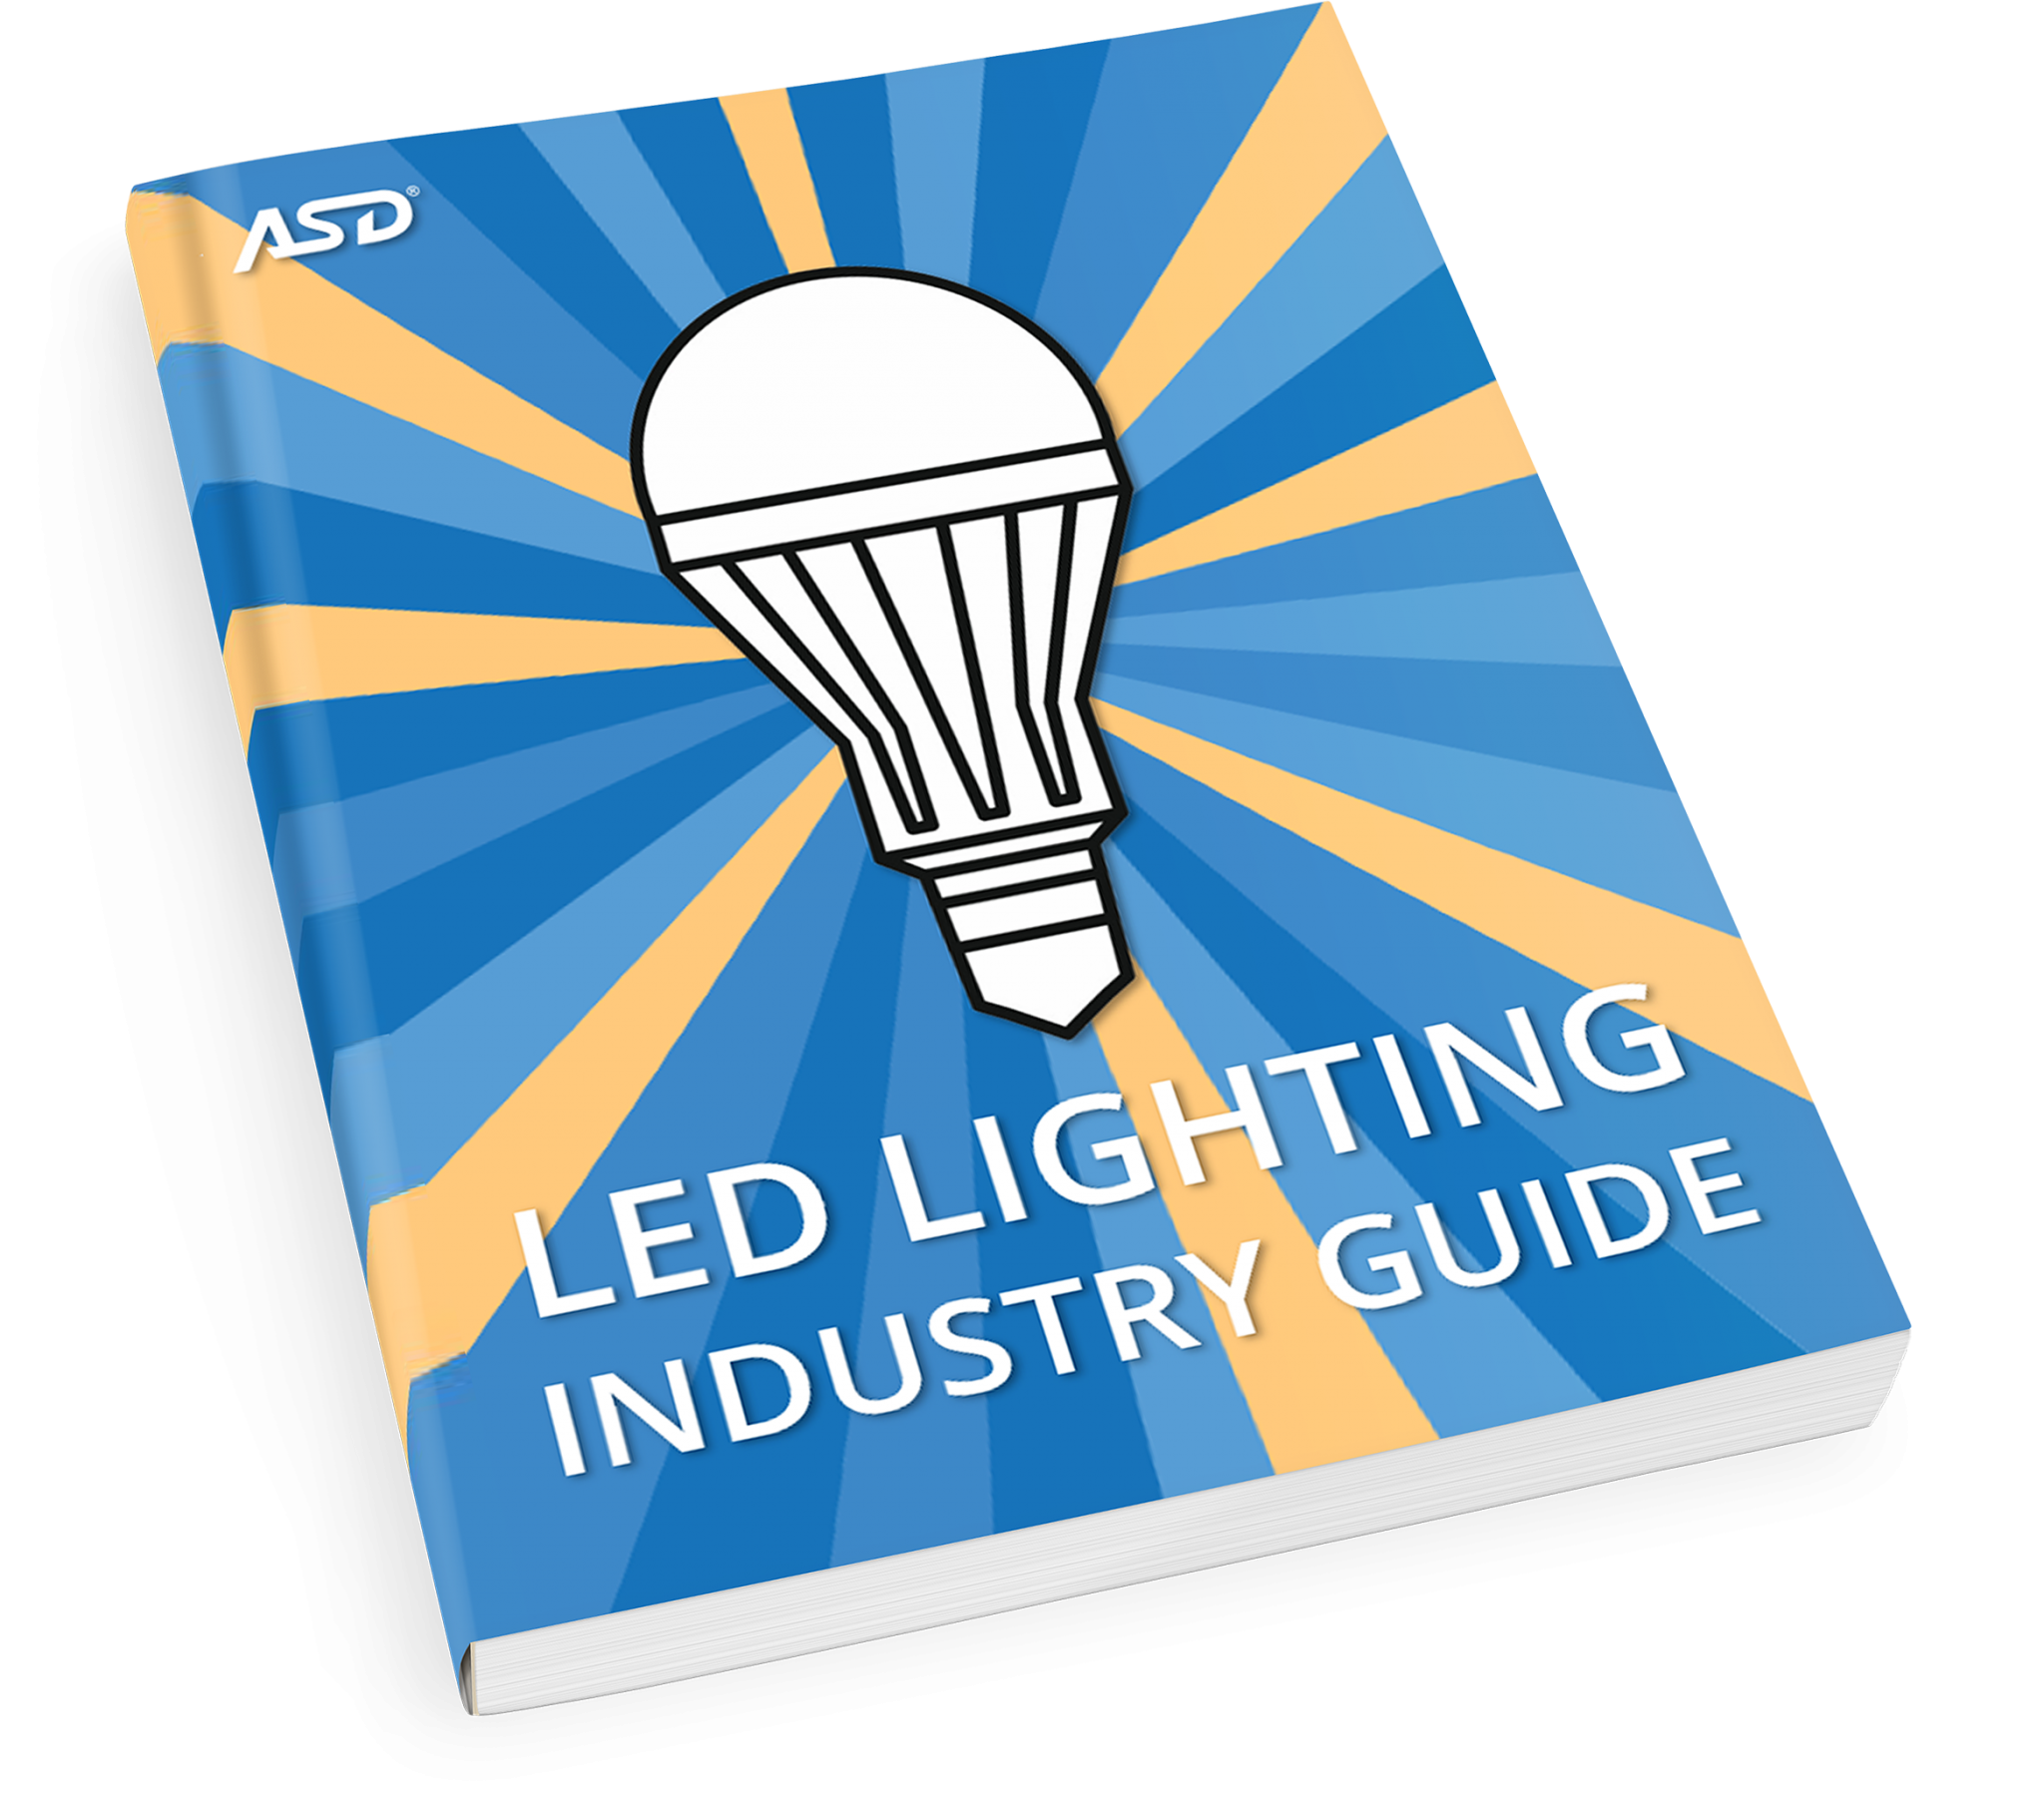 led lighting industry guide